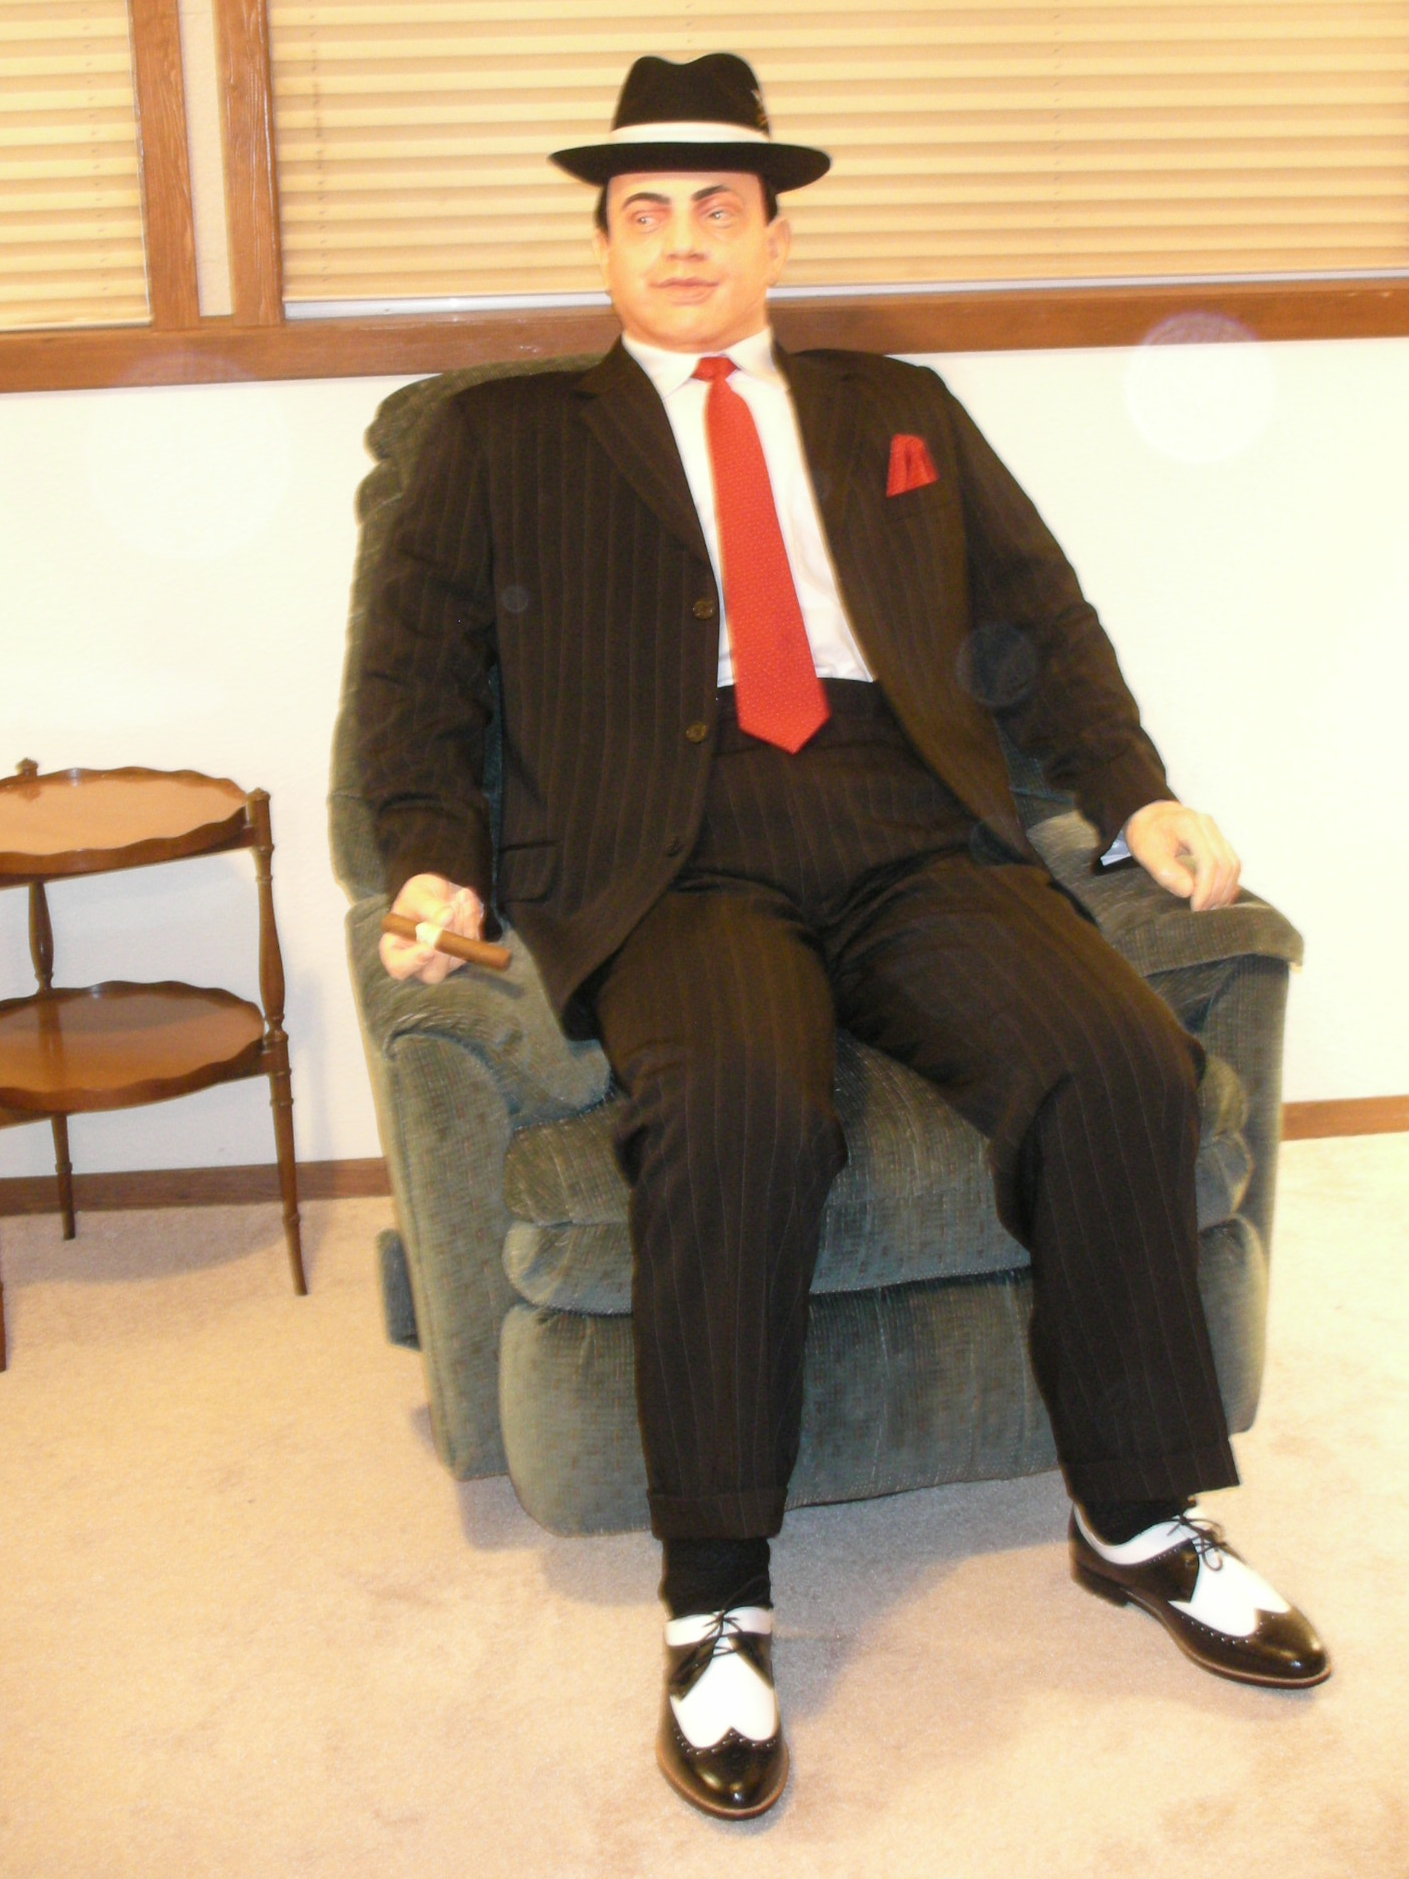 Al Capone Life-size Replica, Hotel Chain Photo Opp